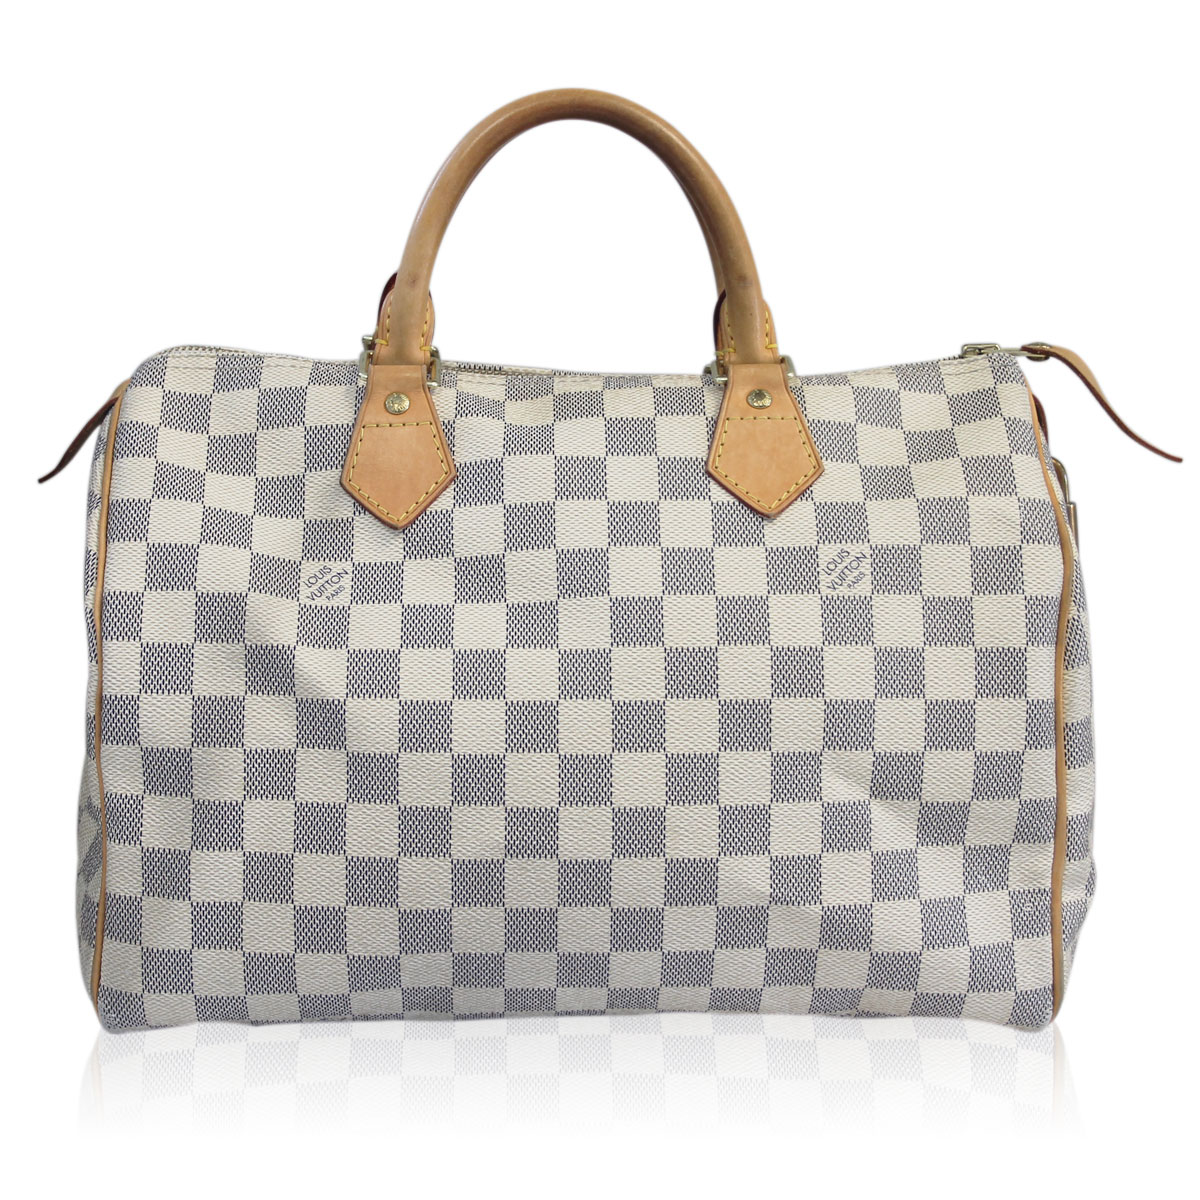 Louis vuitton damier handbags